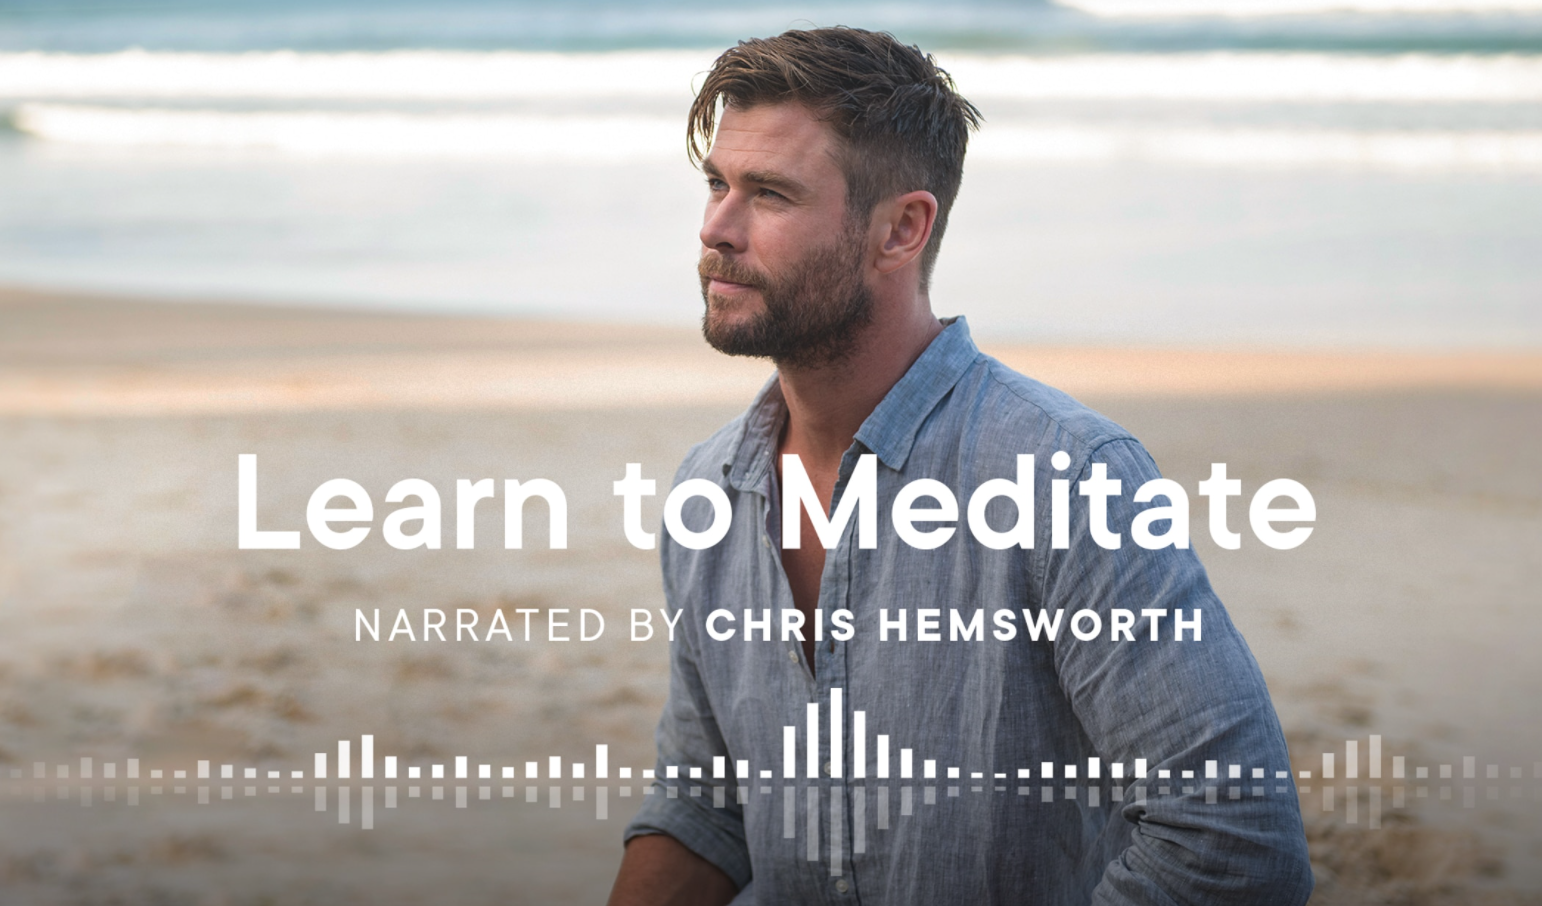 Now You Can Meditate with Chris Hemsworth 7 Days a Week